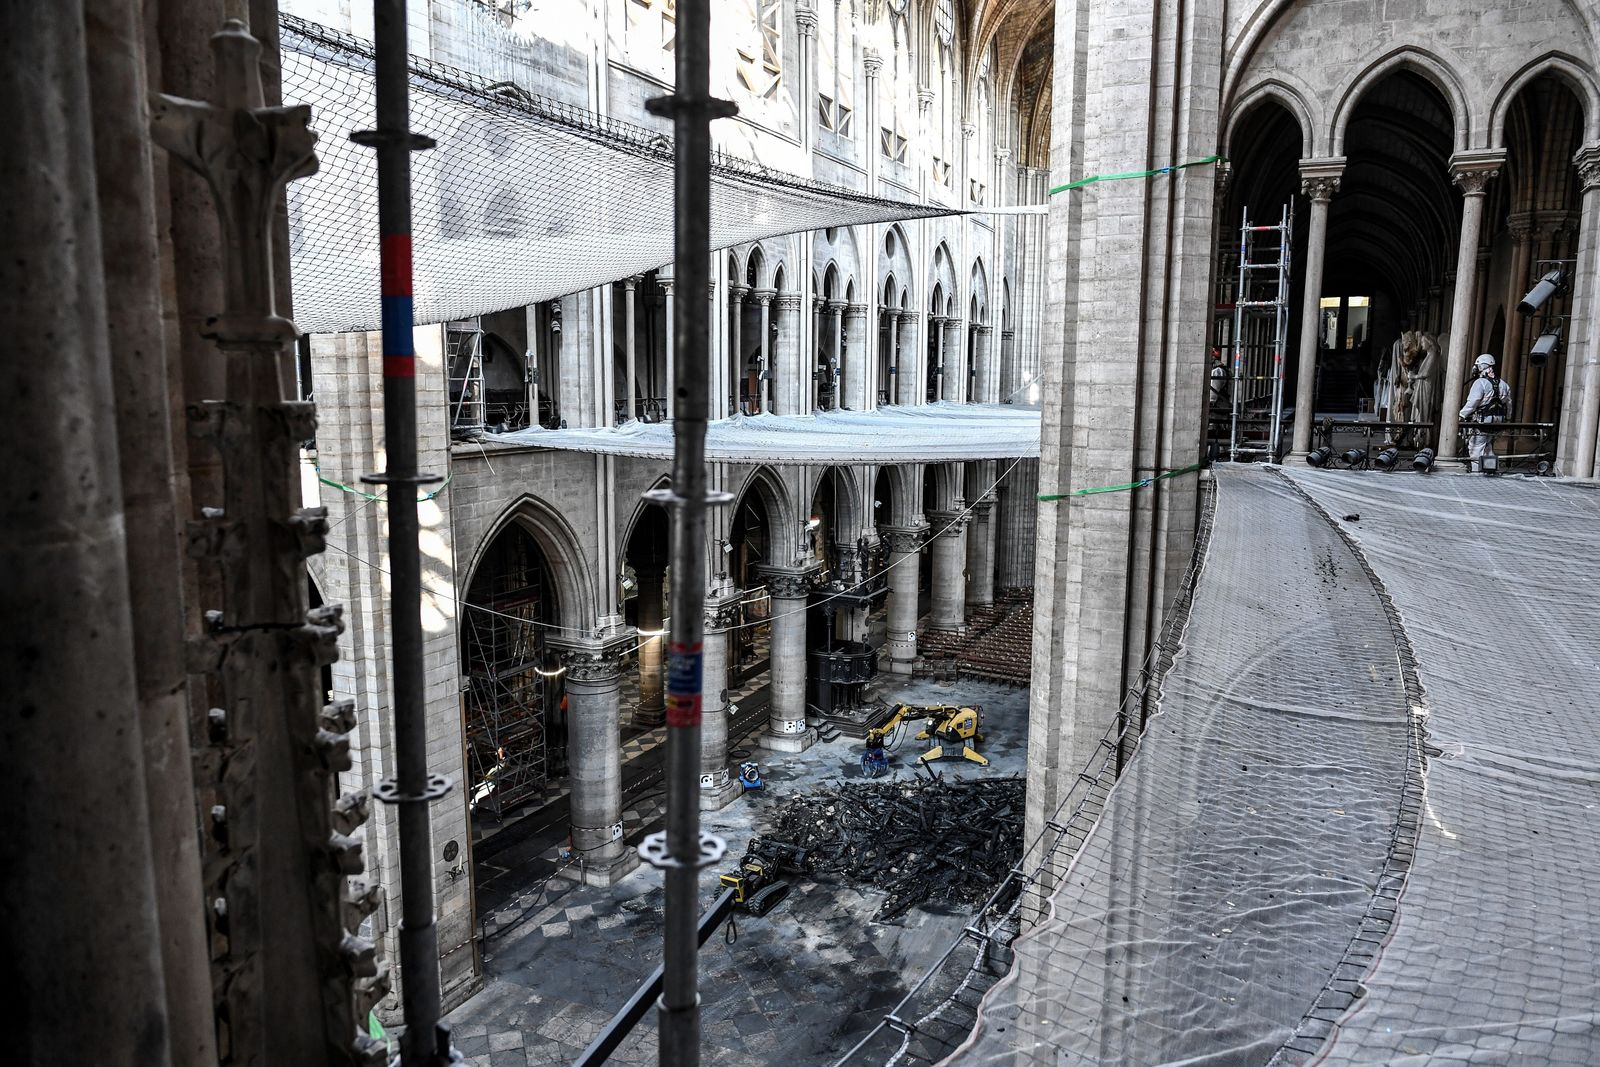 Damage on the nave and rubble are pictured during preliminary work in the Notre-Dame de Paris Cathedral three months after a major fire Wednesday, July 17, 2019 in Paris. The chief architect of France's historic monuments says that three months after the April 15 fire that devastated Notre Dame Cathedral the site is still being secured. (Stephane de Sakutin/Pool via AP)